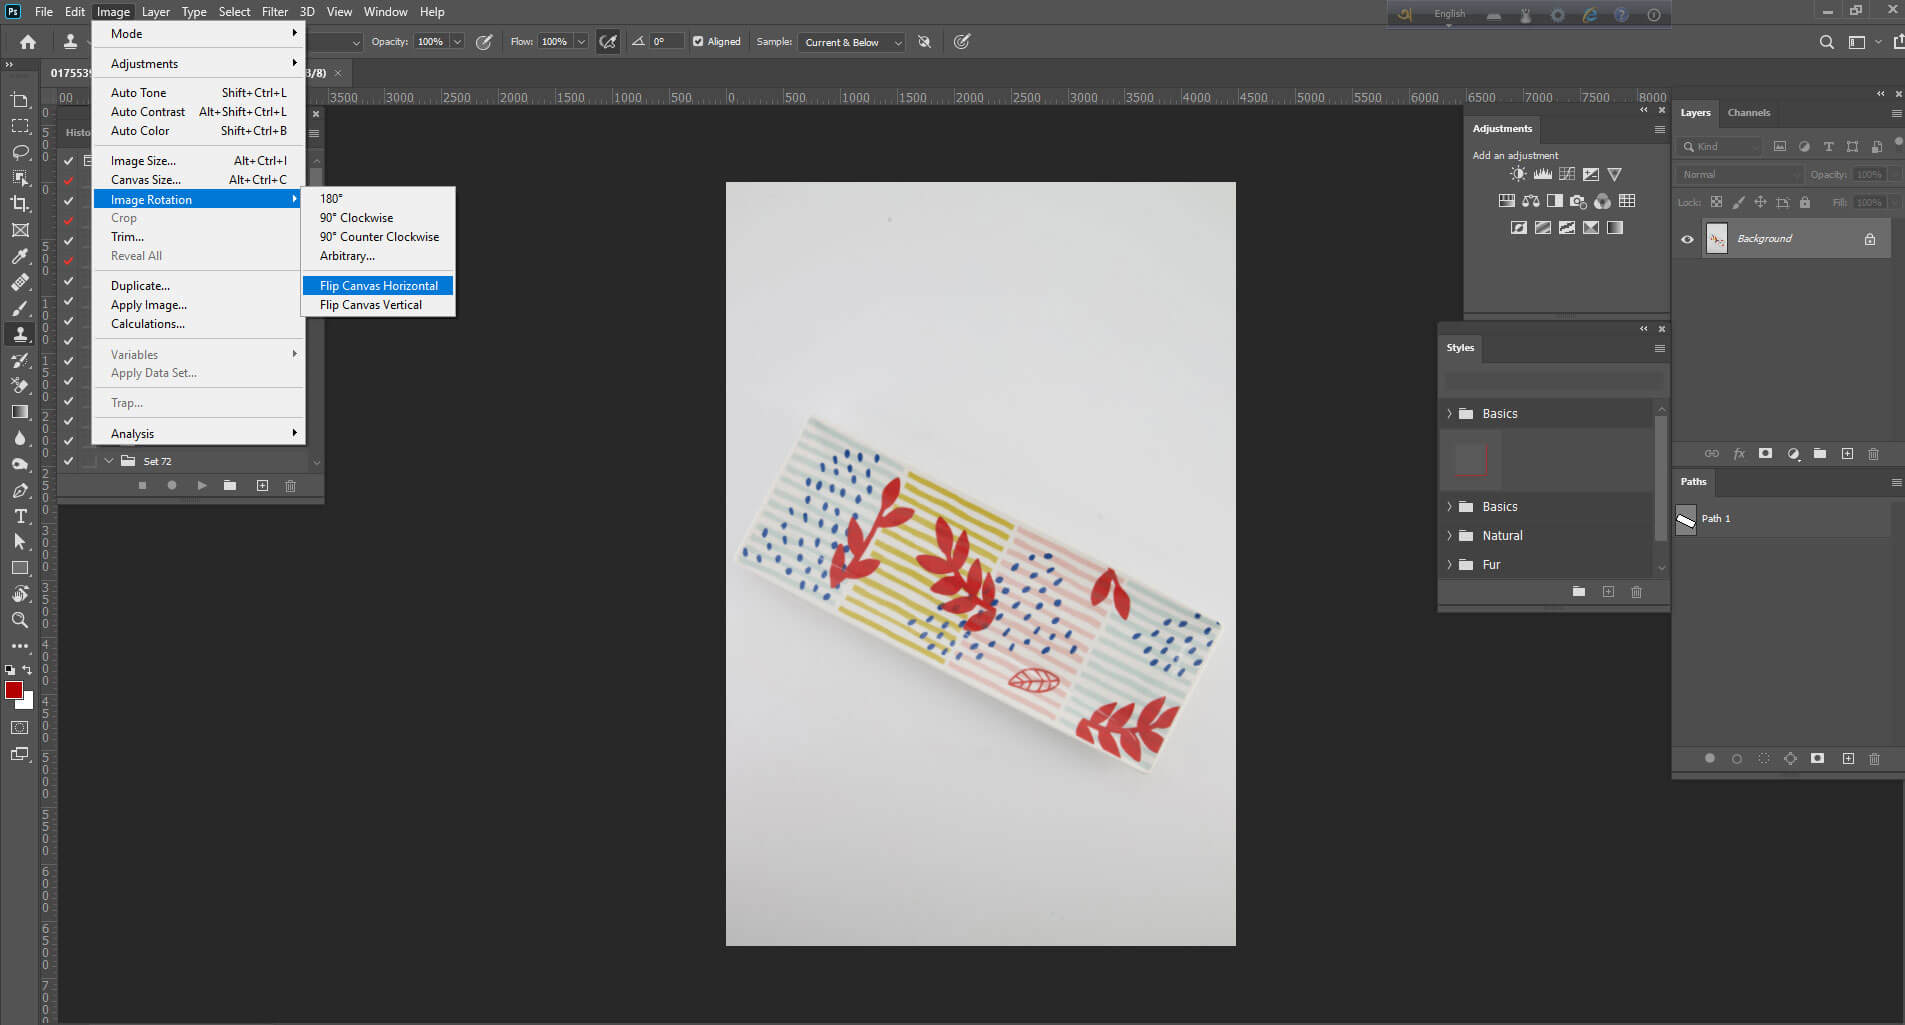 Flipping the whole image/canvas - How to Flip an Image in Photoshop